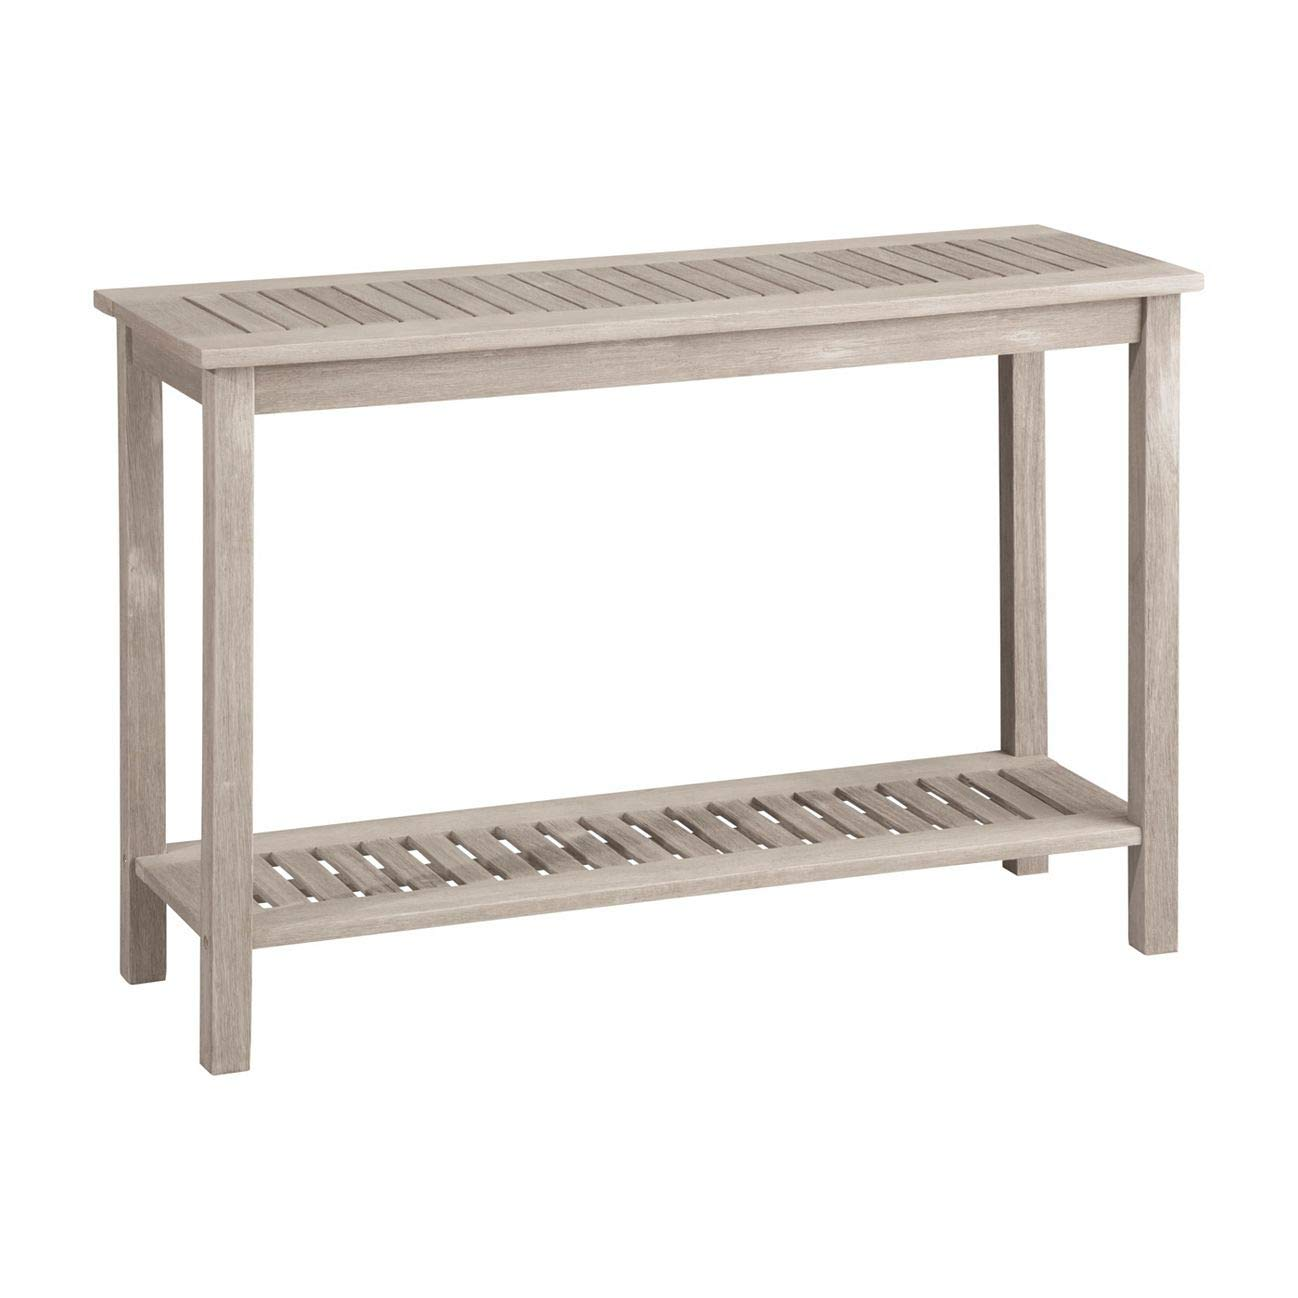 Outdoor Furniture Console Table